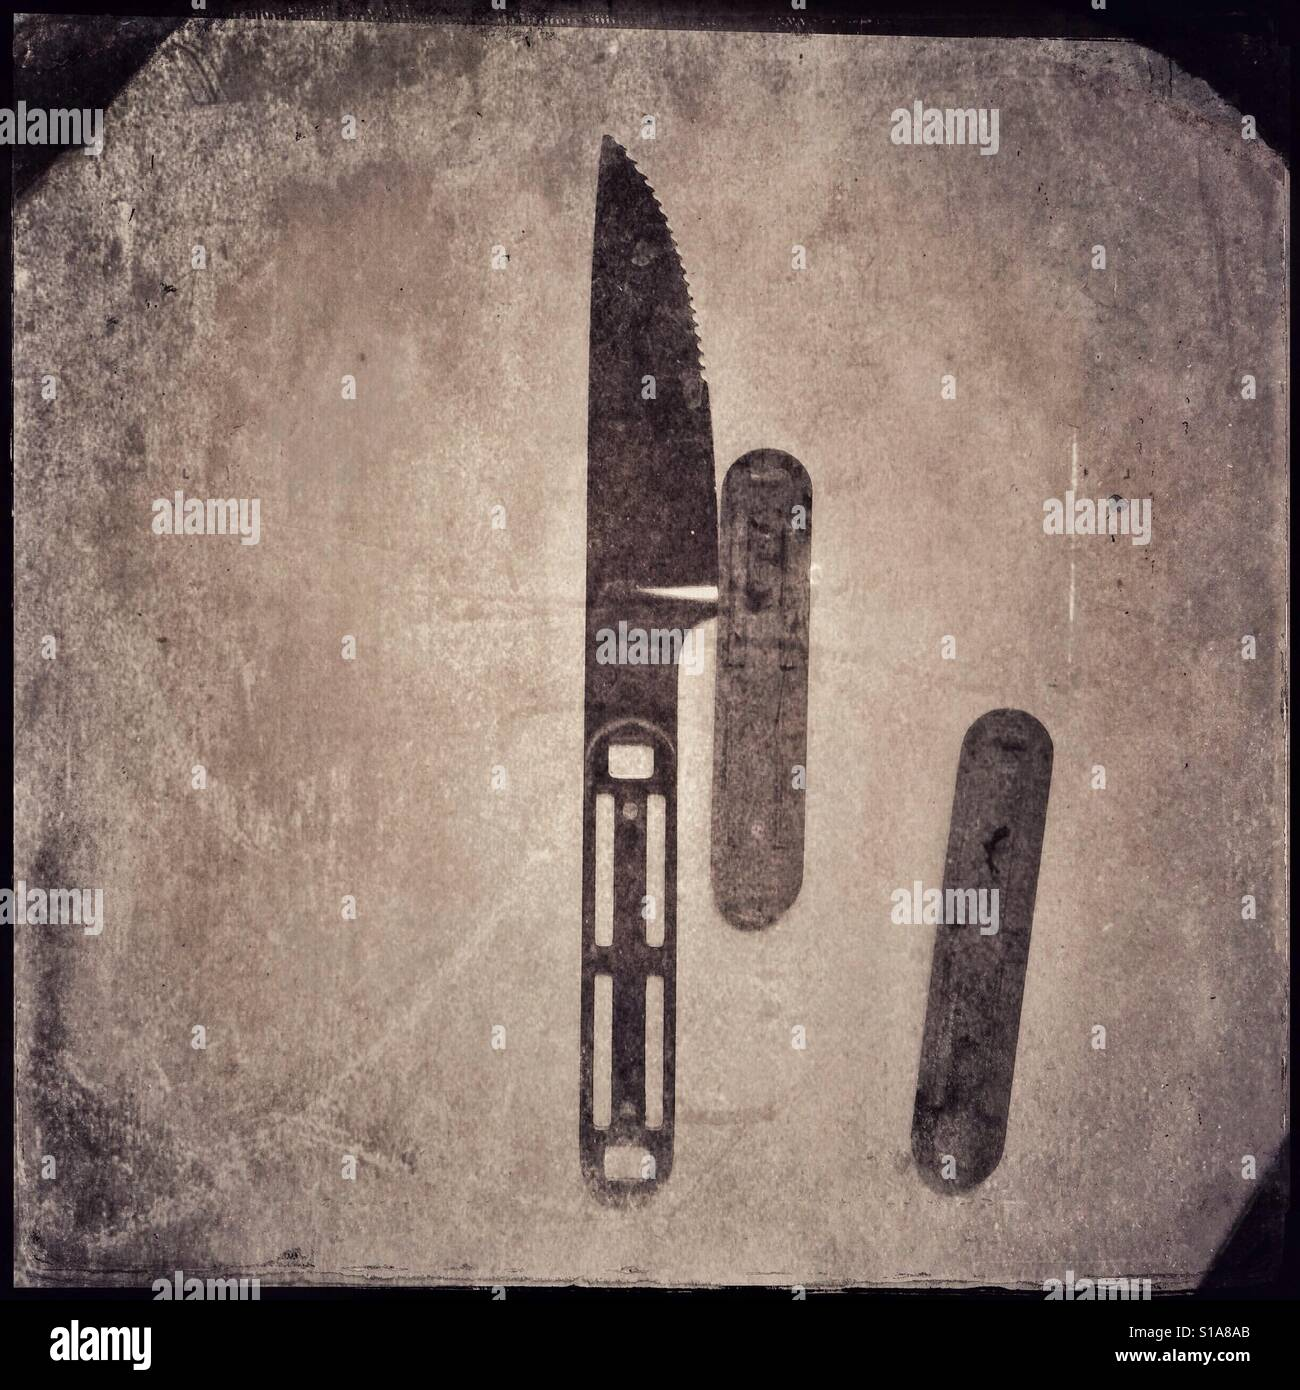 Parts of a disassembled knife still life - Stock Image